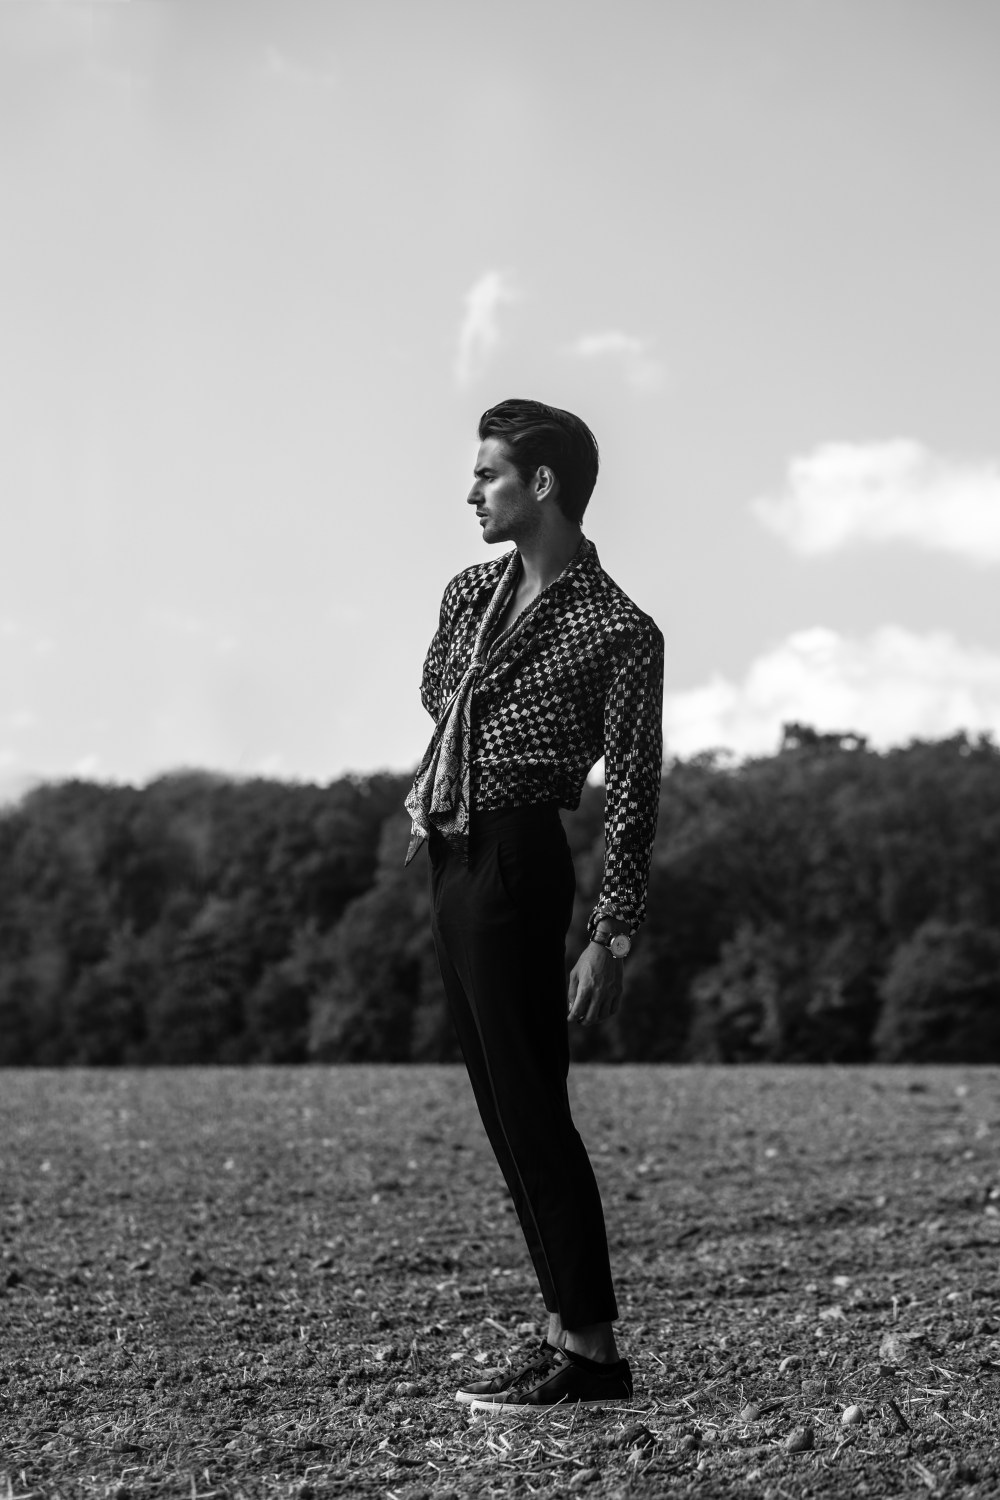 adrien guarino male mode square agency fashion editorial henri balit infashionity saint laurent silk shirt black white photography field